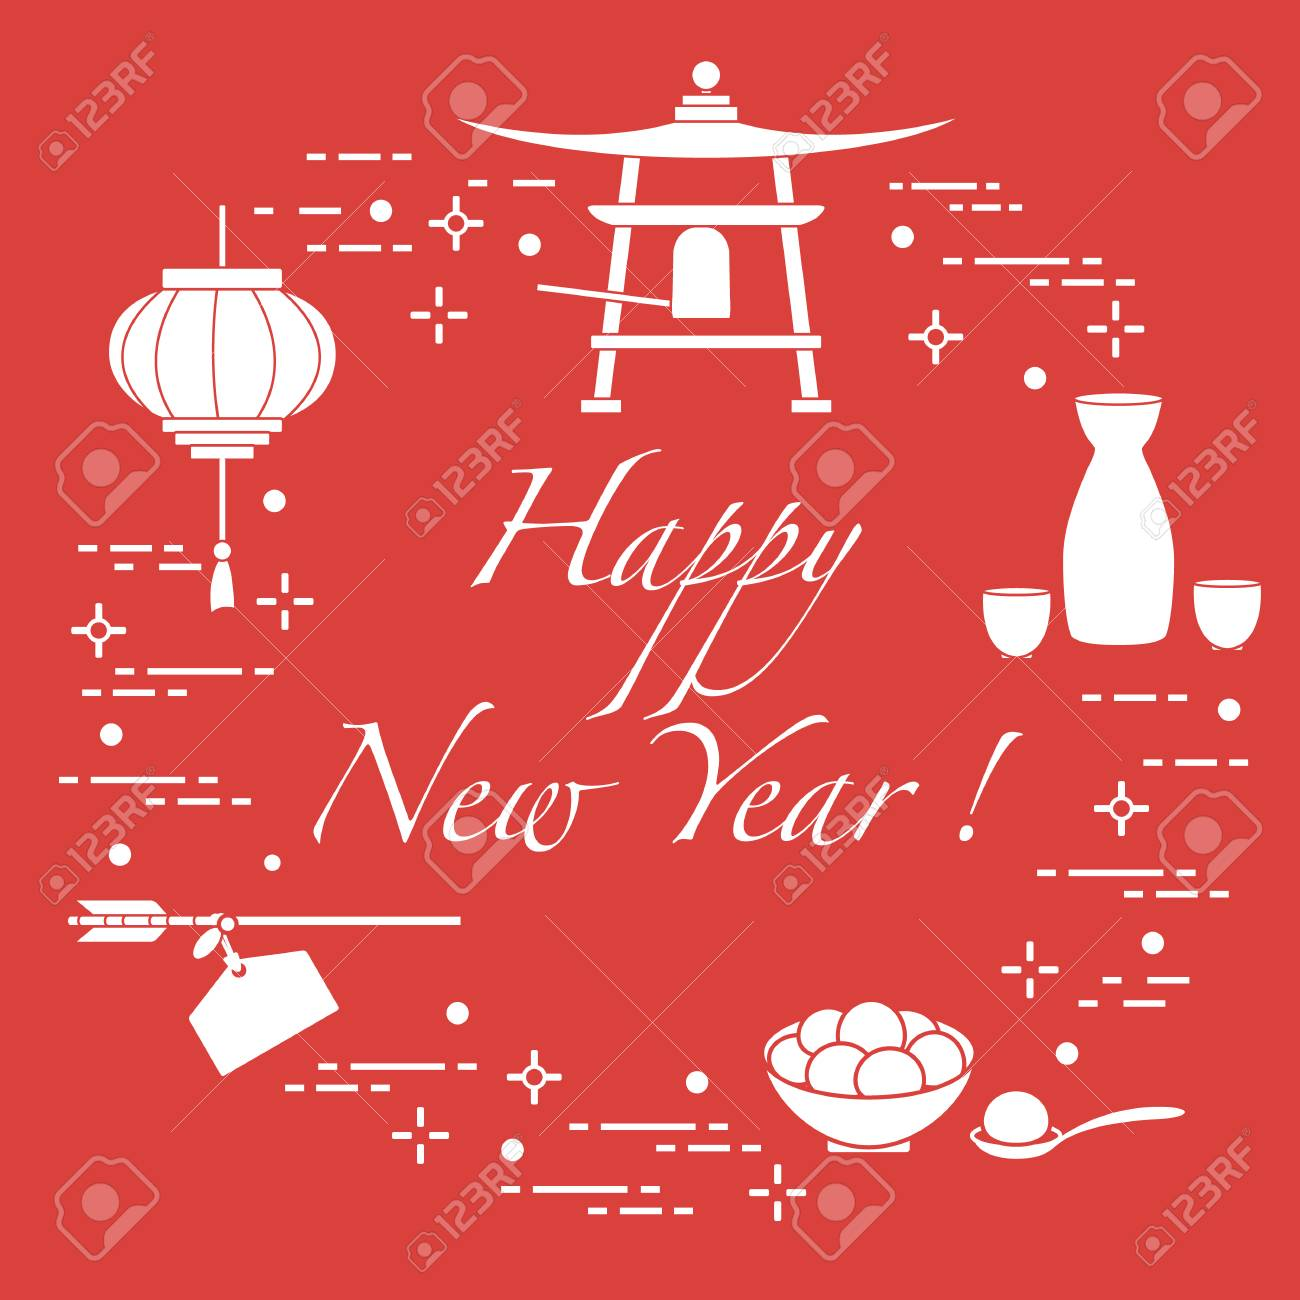 happy new year 2019 card new year symbols in japan lantern bell